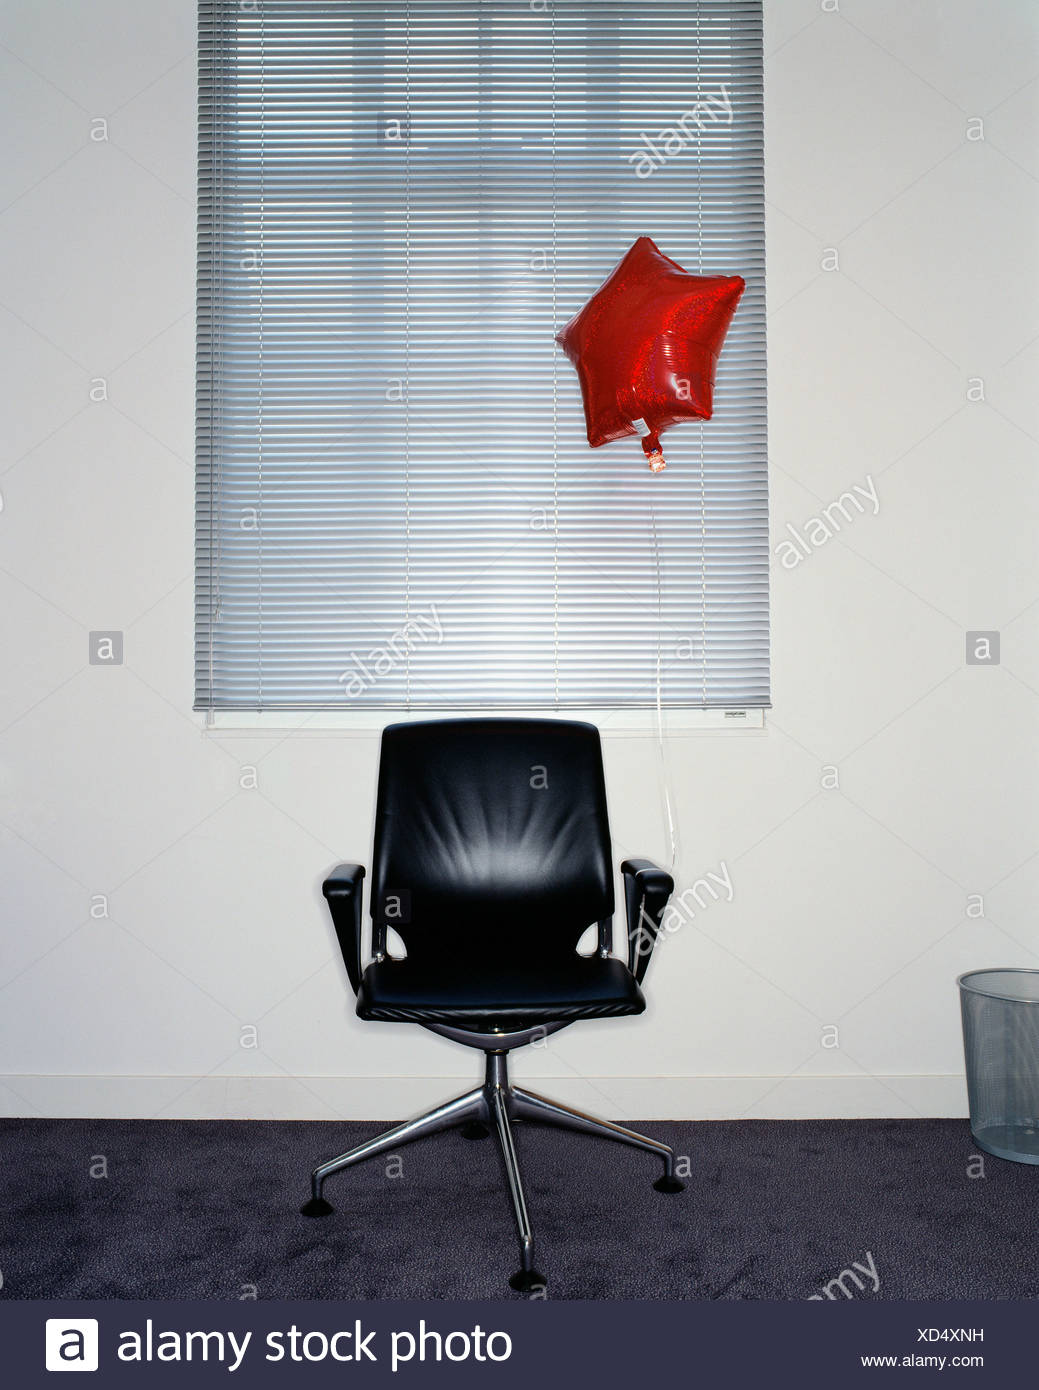 balloon attached to office chair stock photo 283465213 alamy rh alamy com Antique Balloon Chair French Balloon Chairs